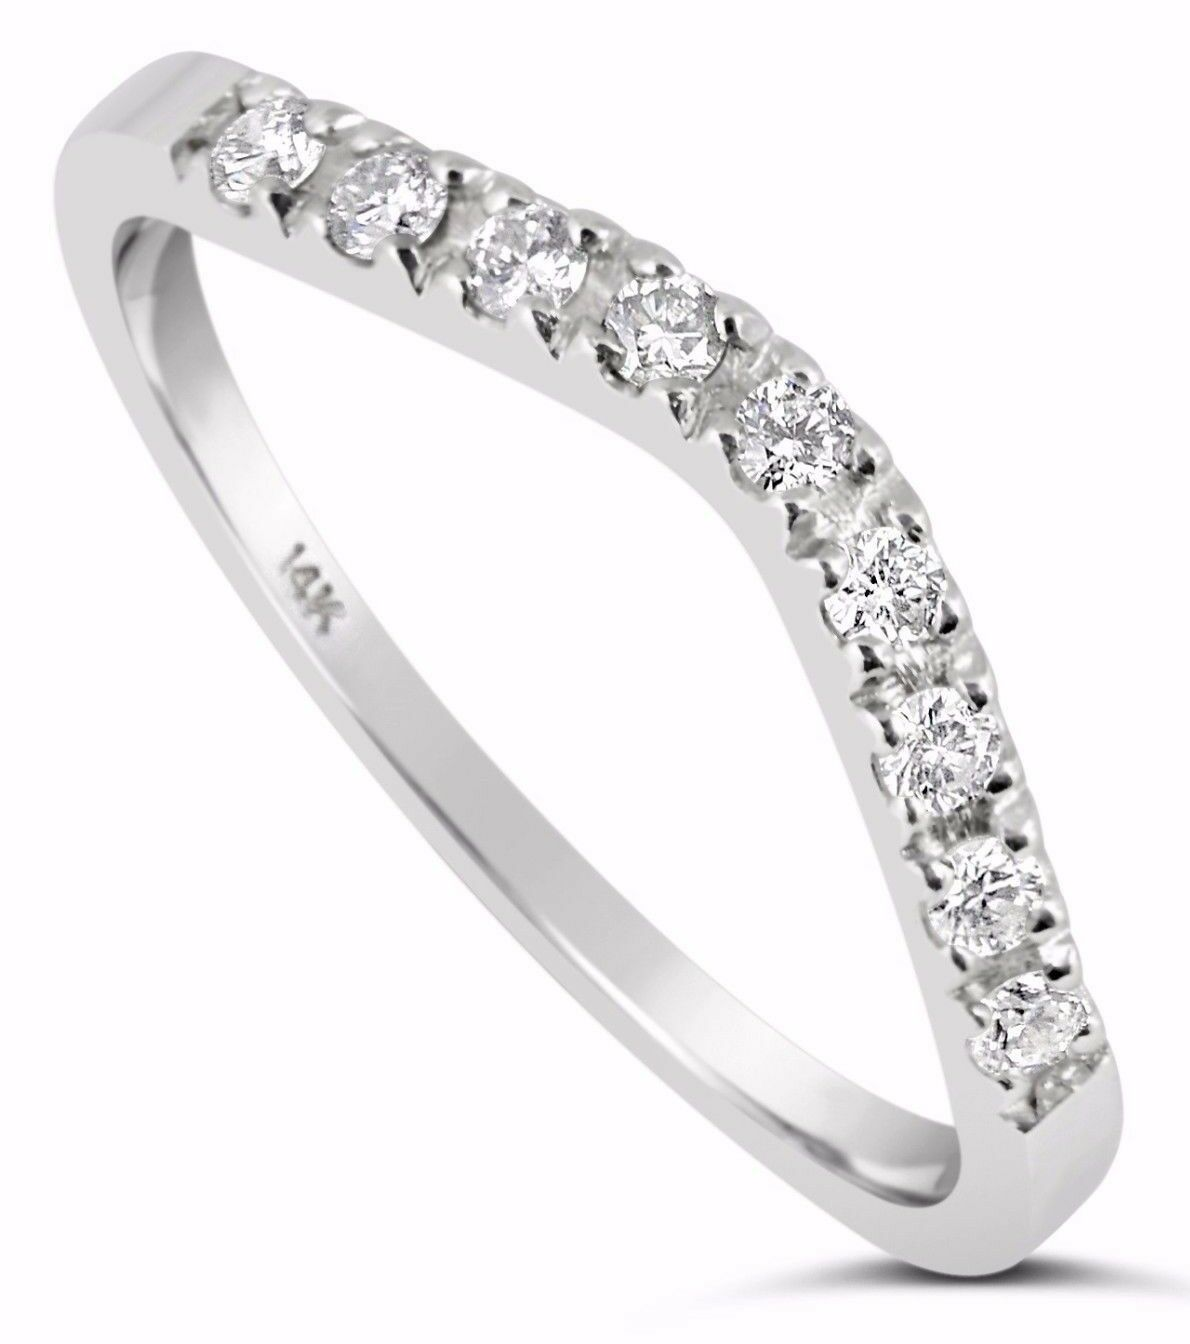 14k White Gold Simulated Diamond Wedding Band Ring Curved...